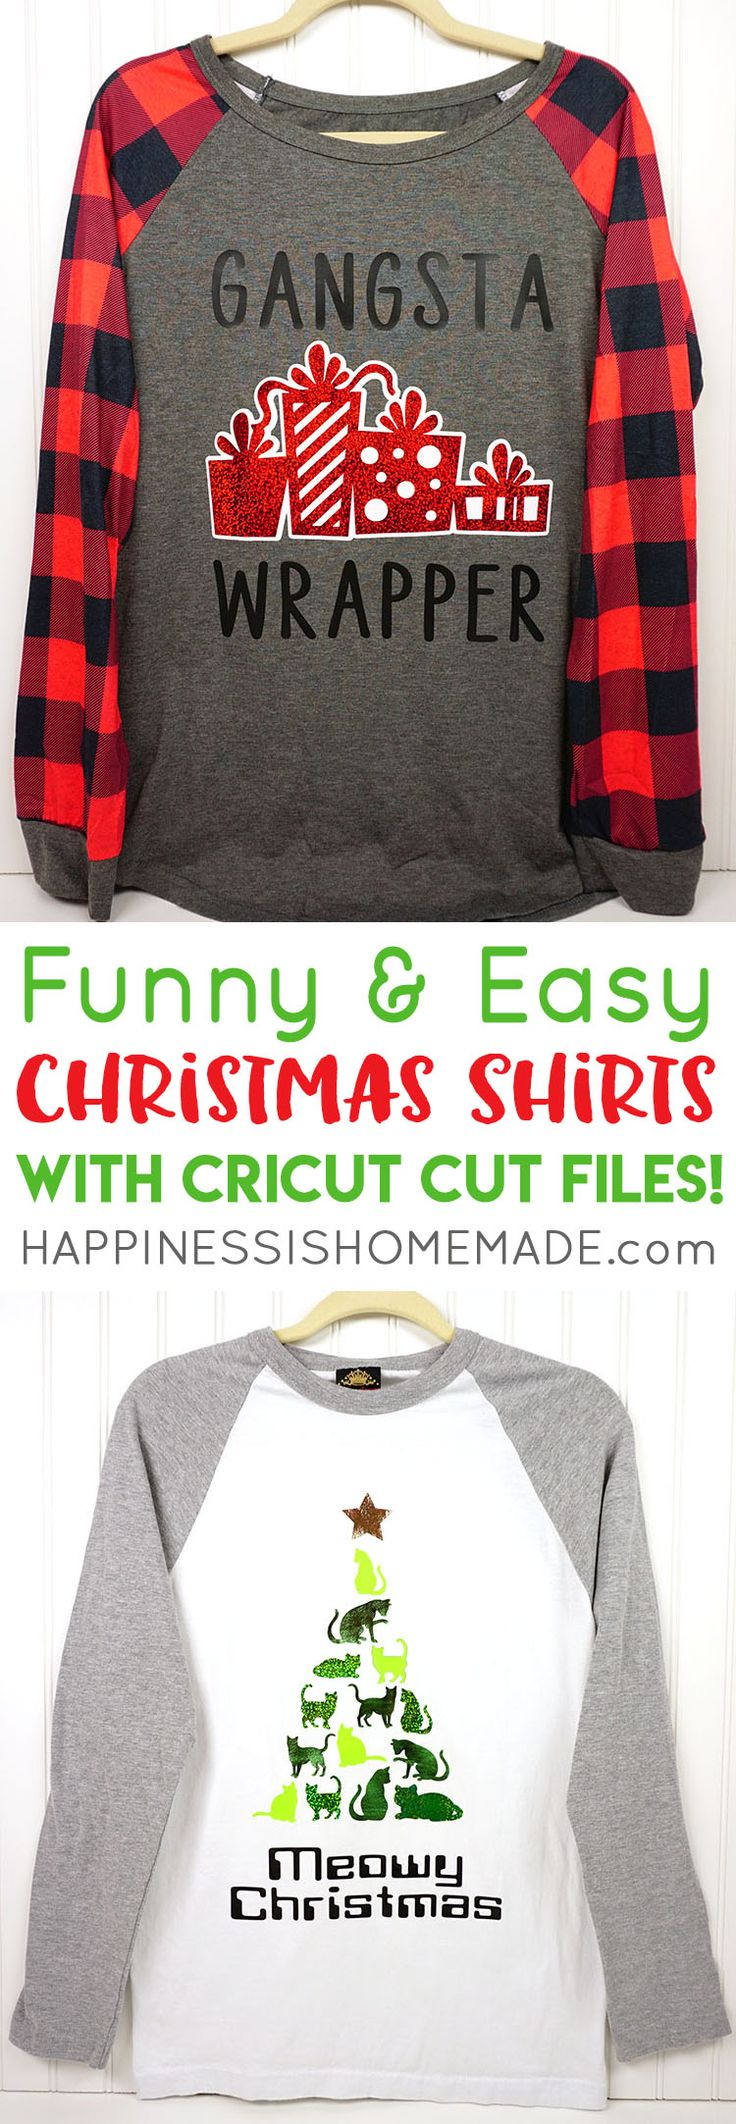 These DIY funny Christmas shirts are quick and easy to make with Cricut! Free Cricut Christmas cut files included!